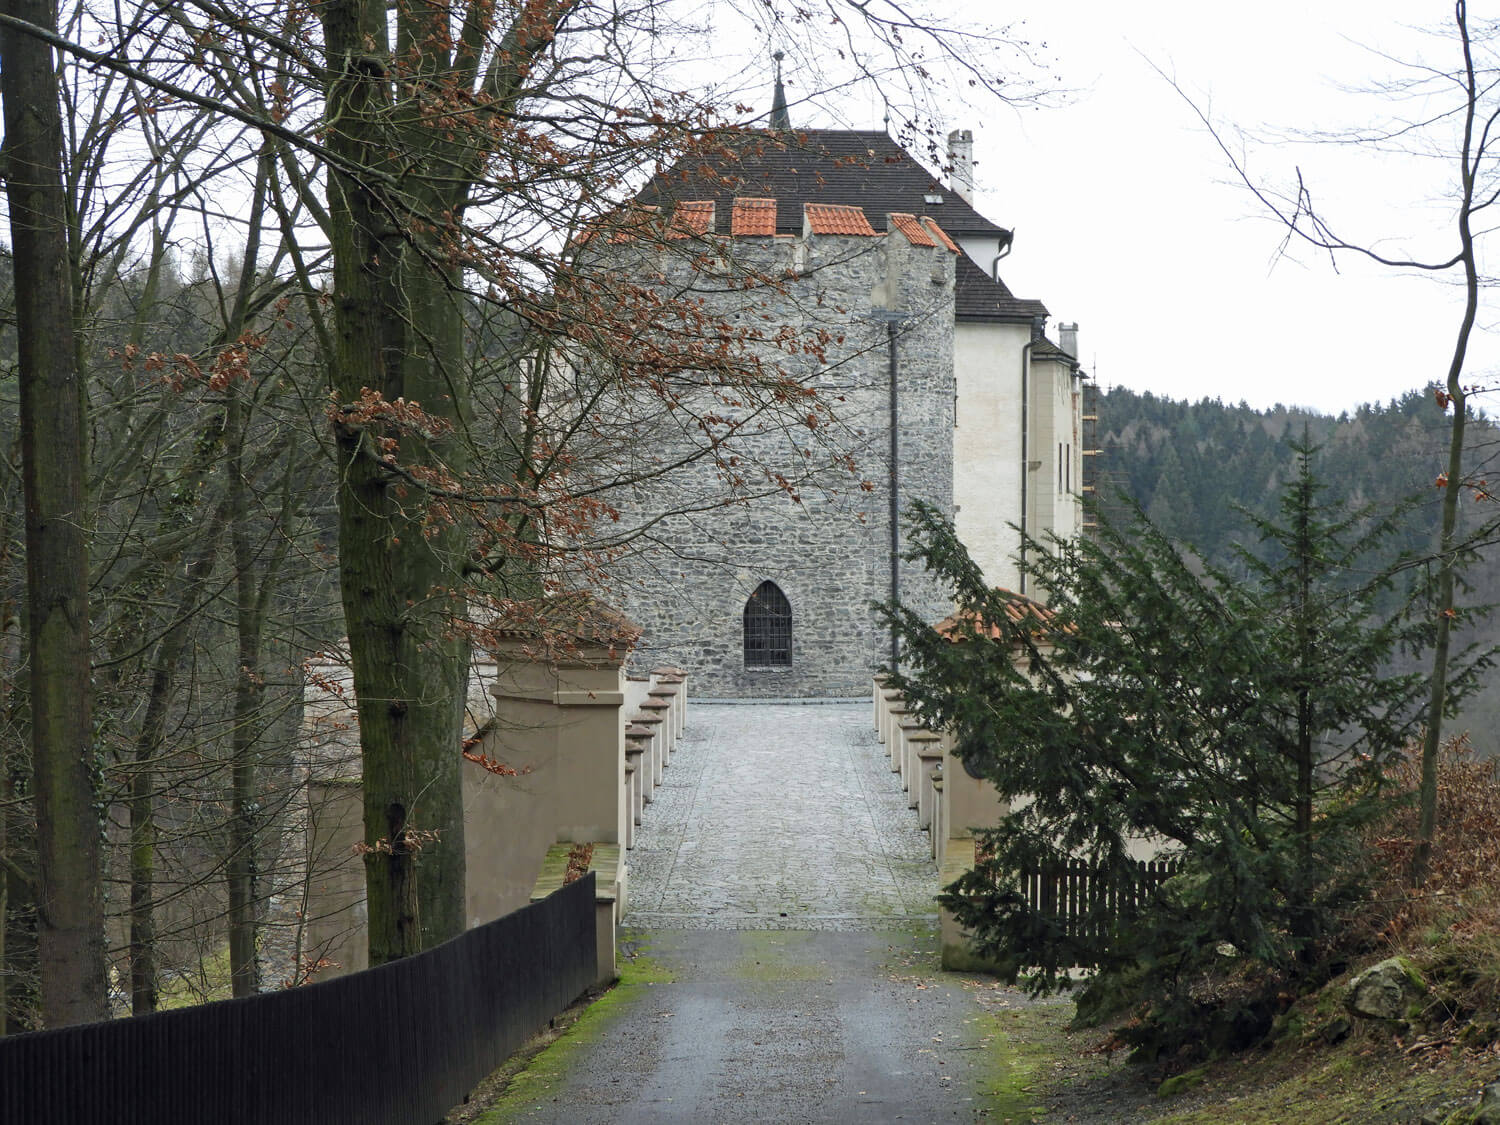 czech-cesky-sternberk-castle-bridge-tower-gate.jpg